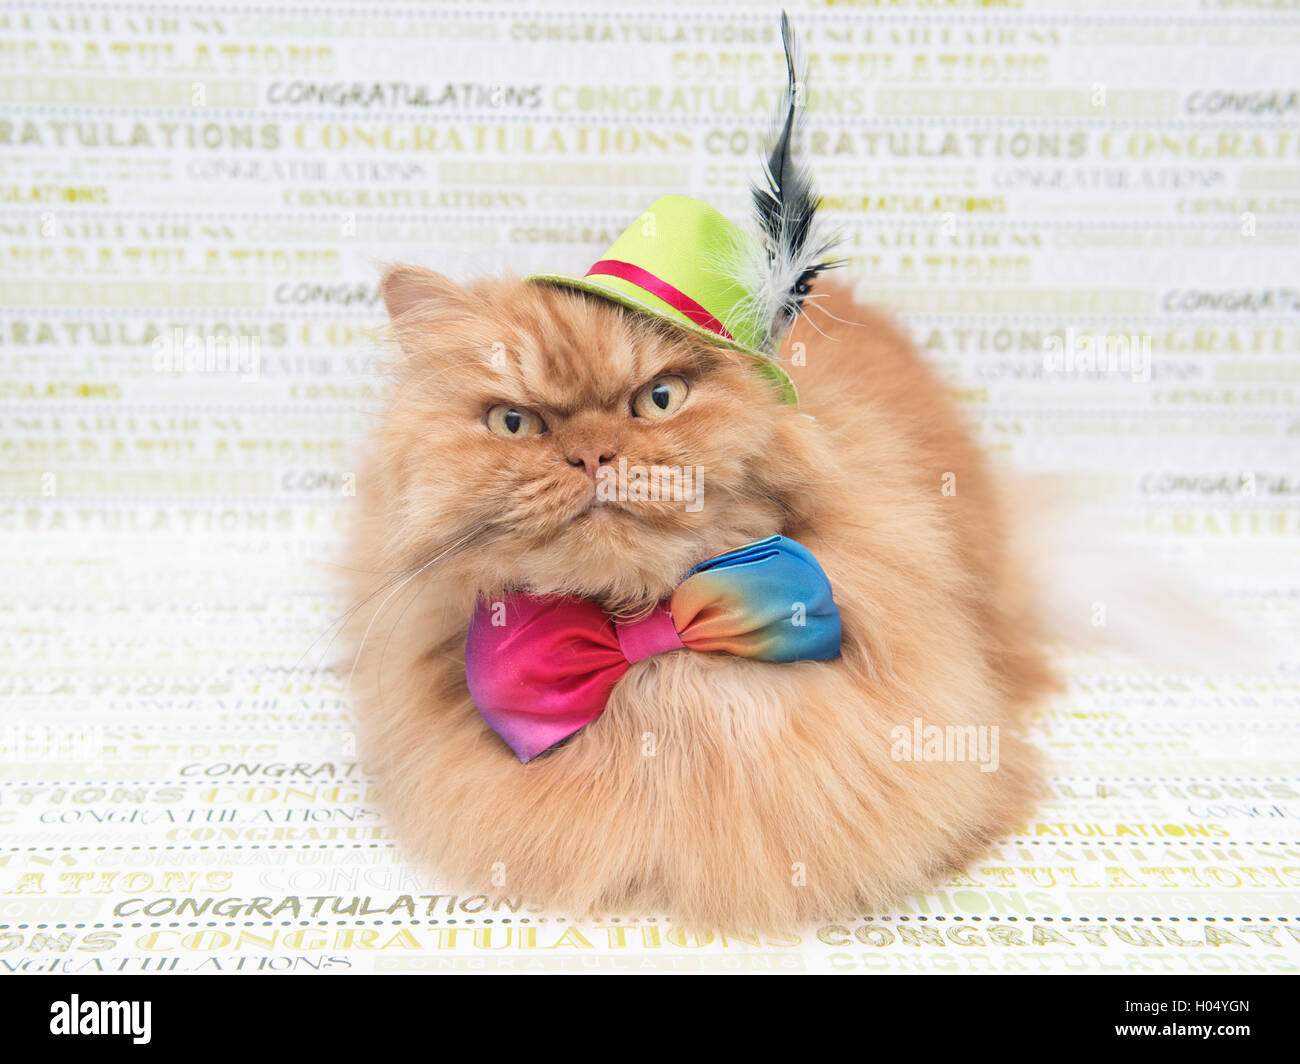 Persian cat wearing top hat and bow tie, - Stock Image